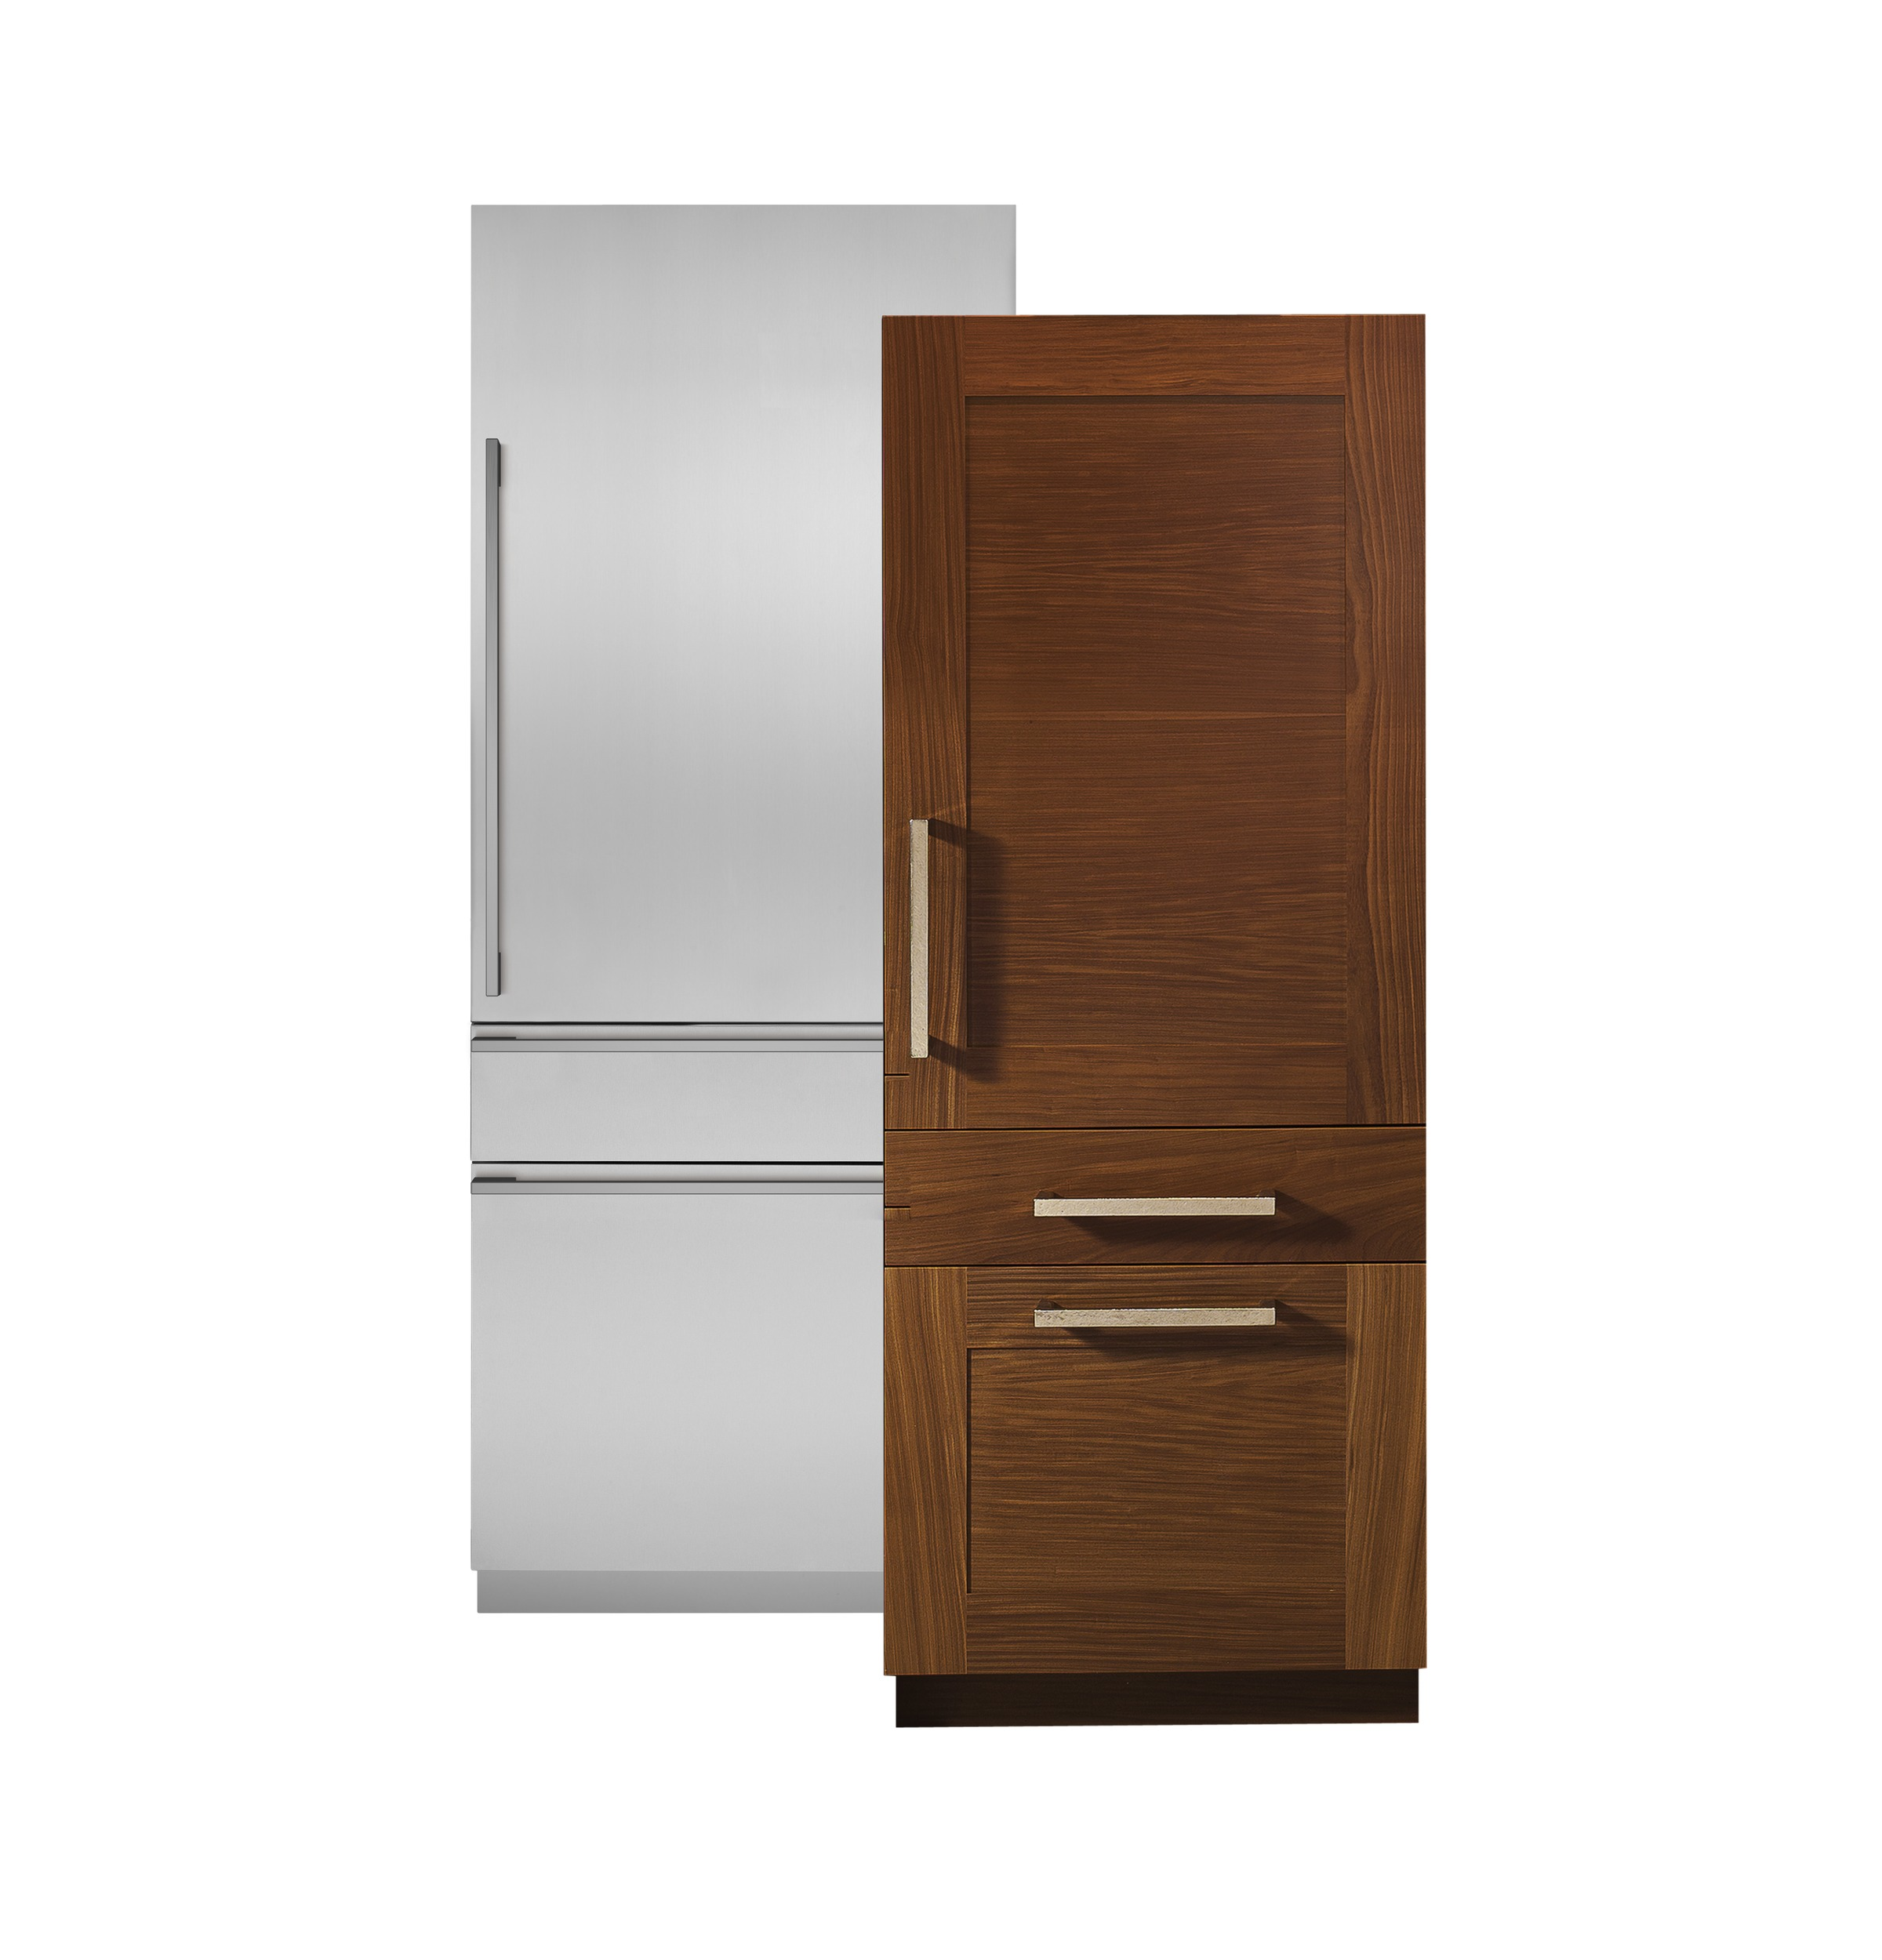 "Monogram Monogram 30"" Integrated Customizable Refrigerator (for Single or Dual Installation)"